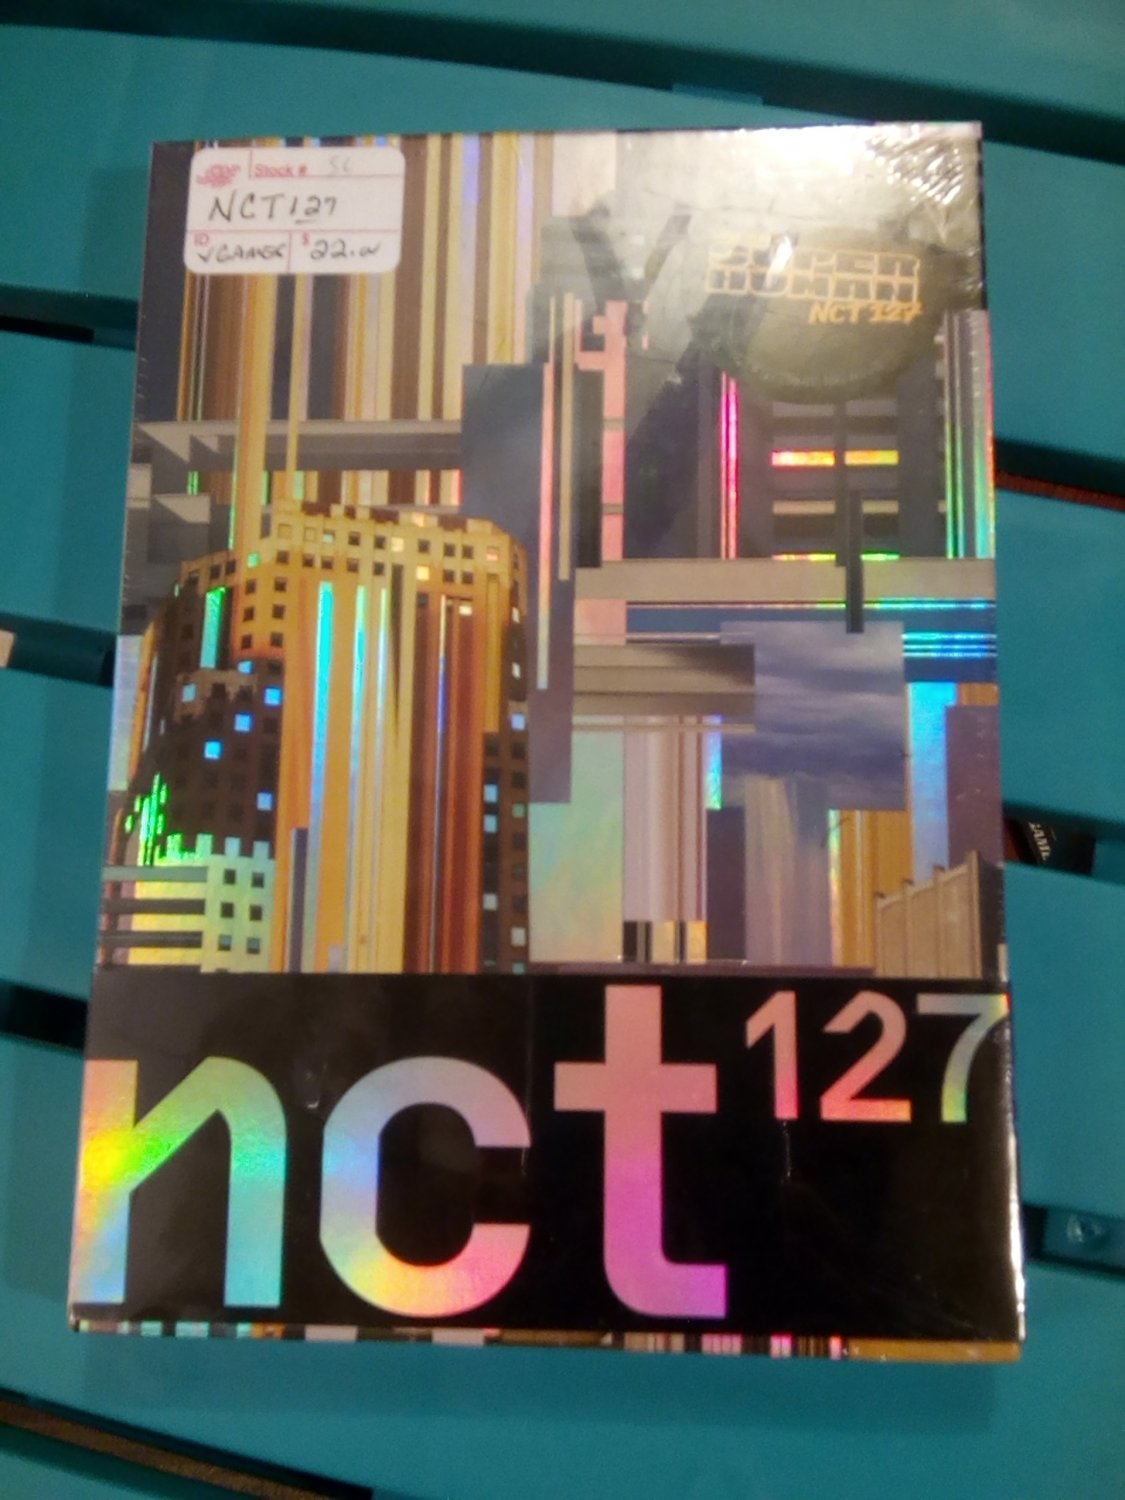 NCT 127: We Are Super Human